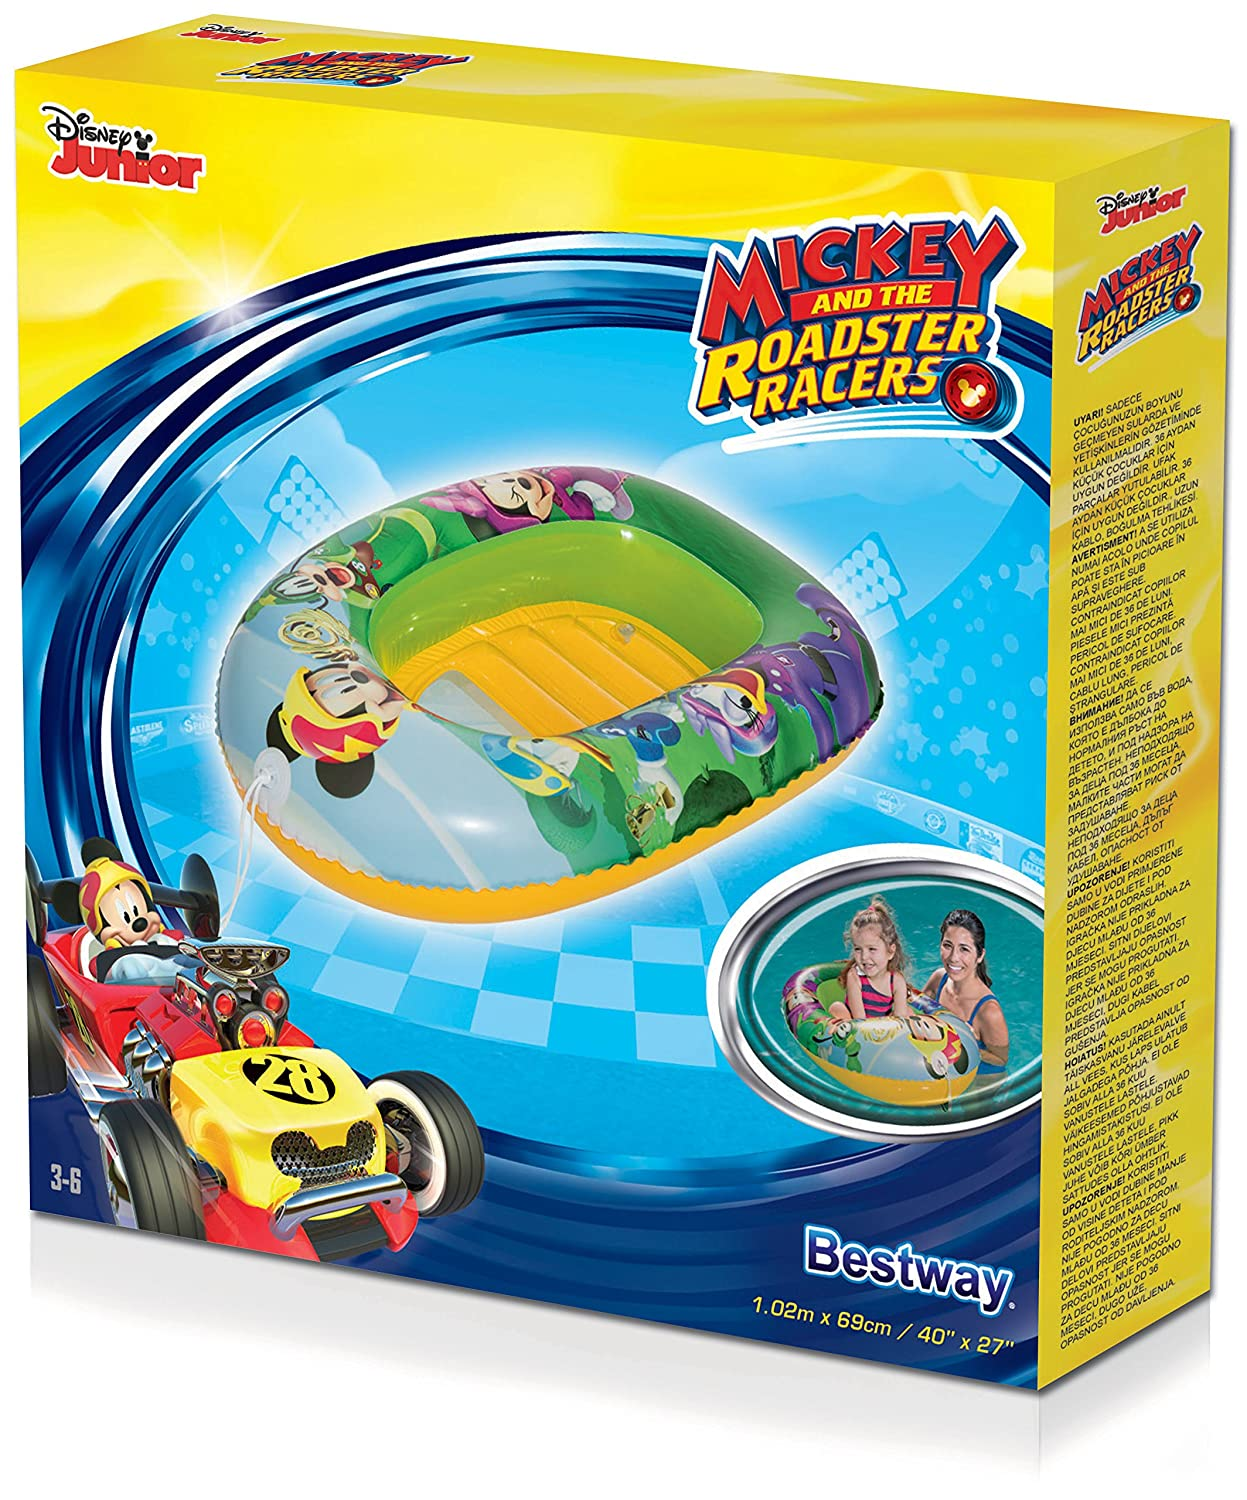 Barca Hinchable Infantil Bestway Mickey and the Roadster Racers